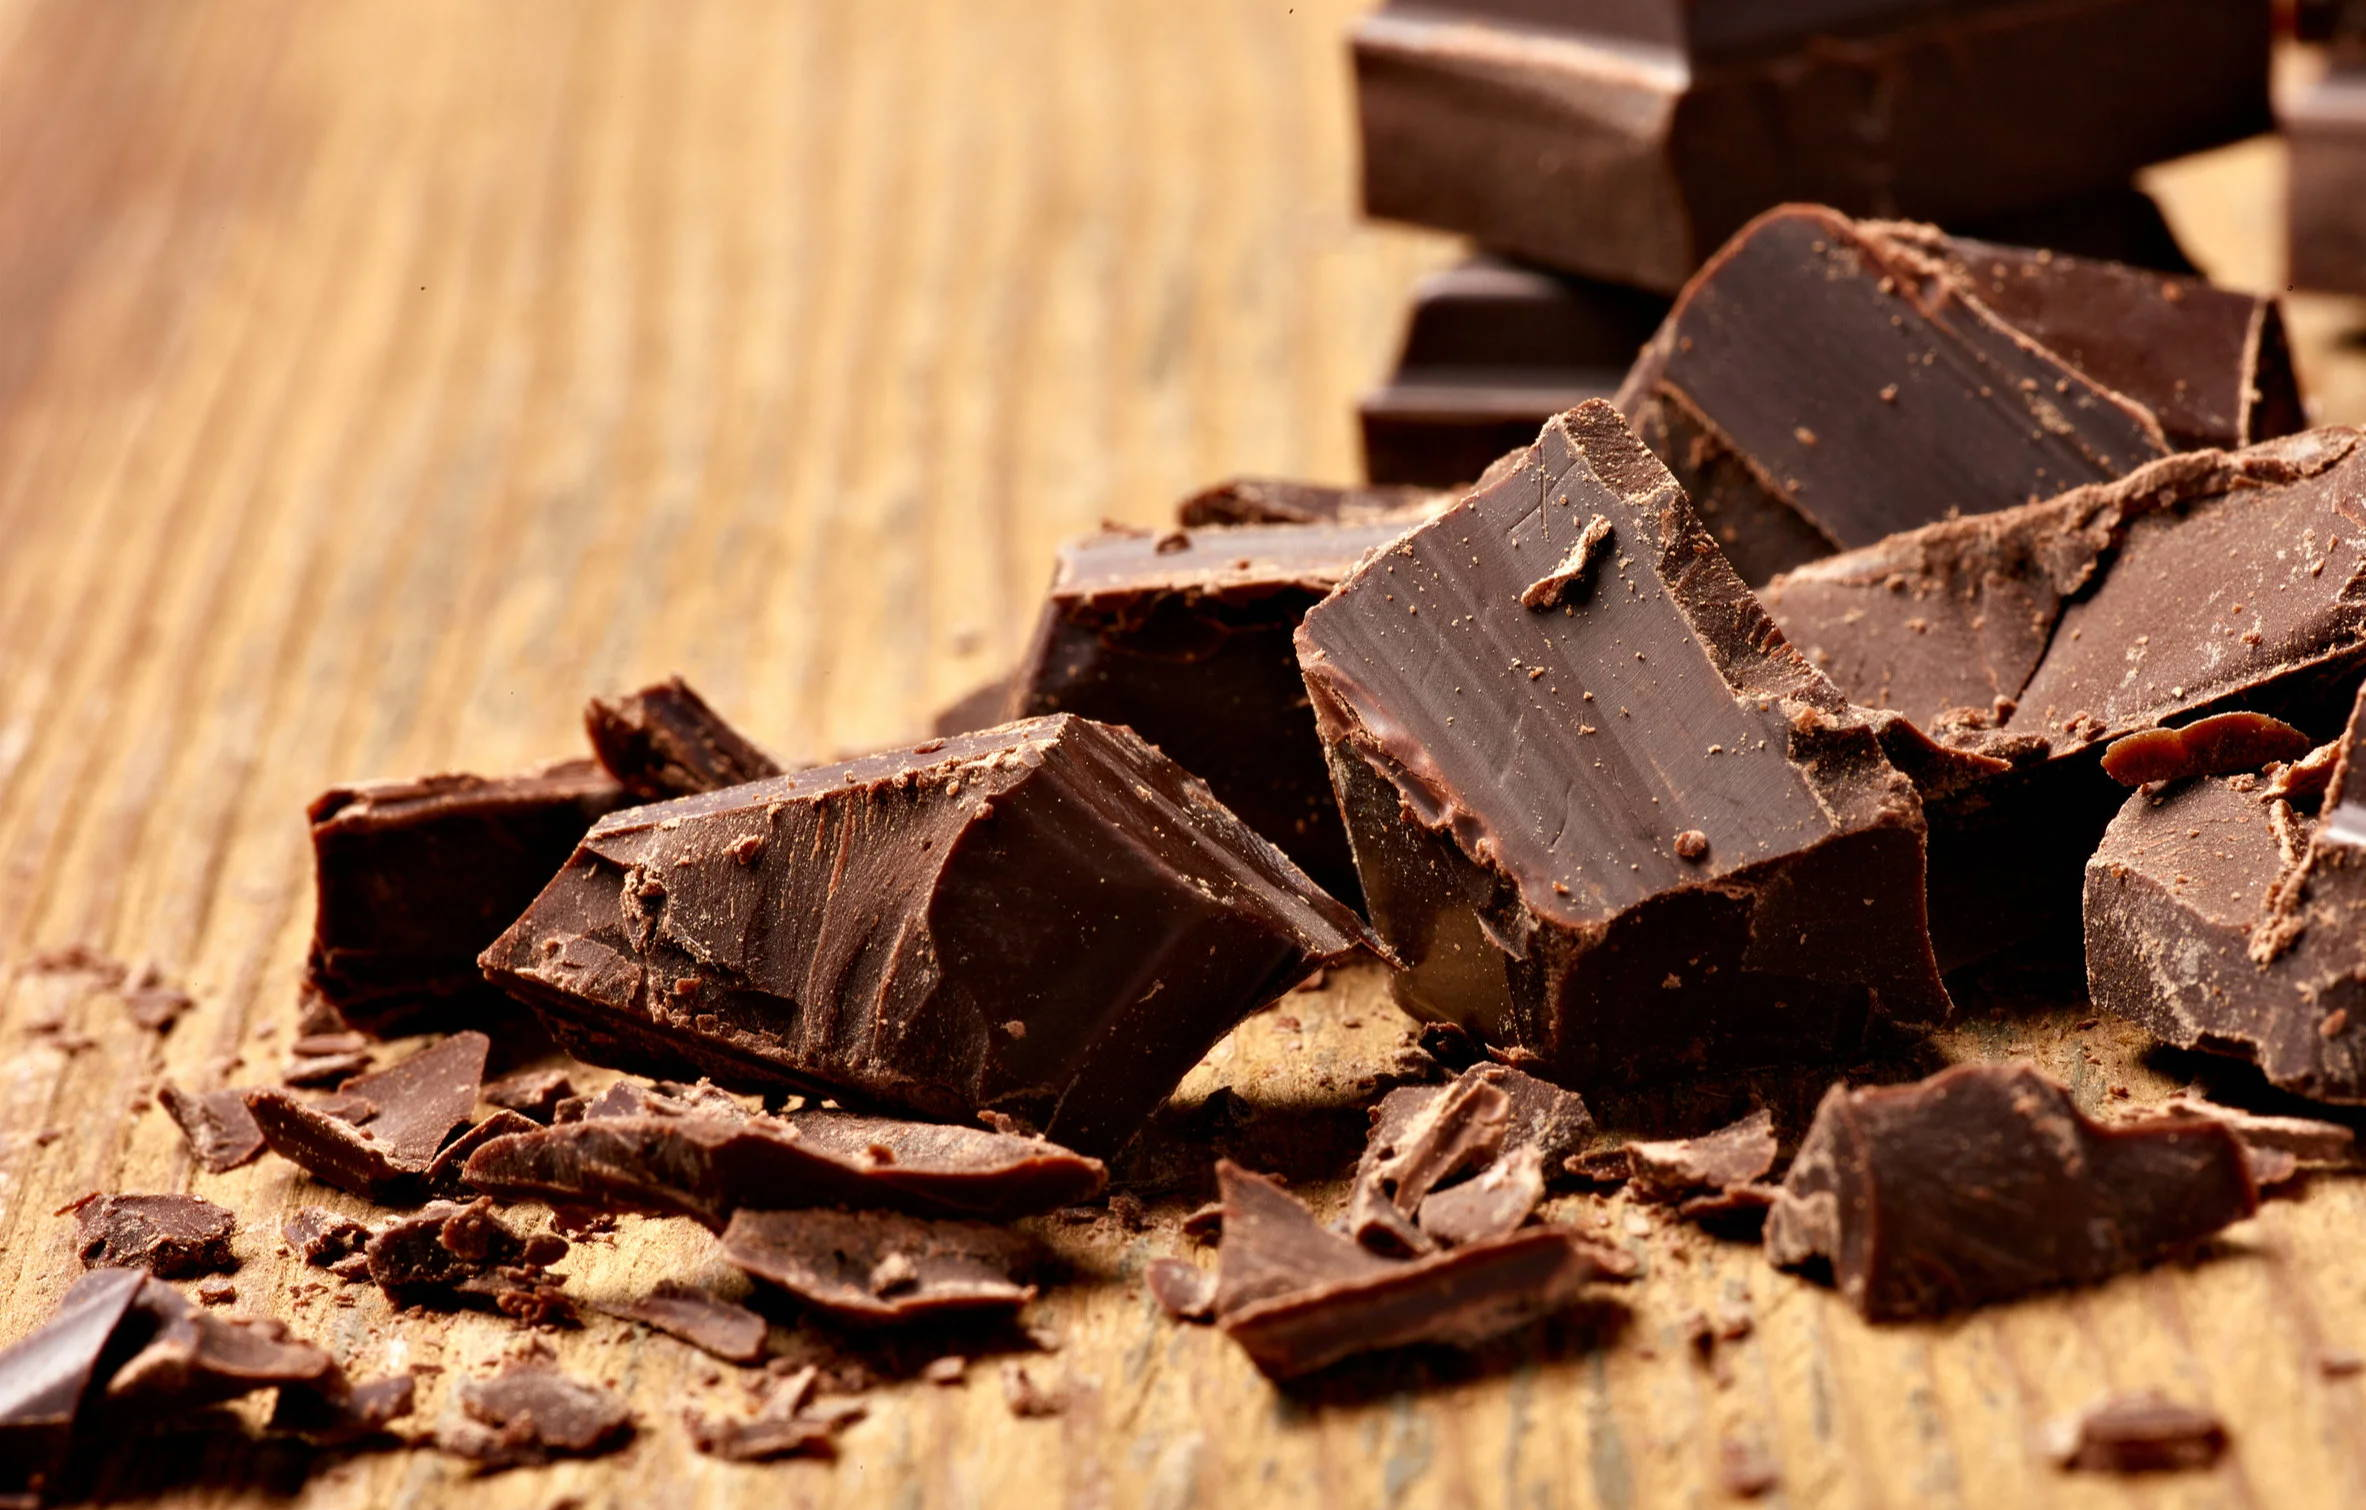 Chunks of chocolate broken up on a wooden slab